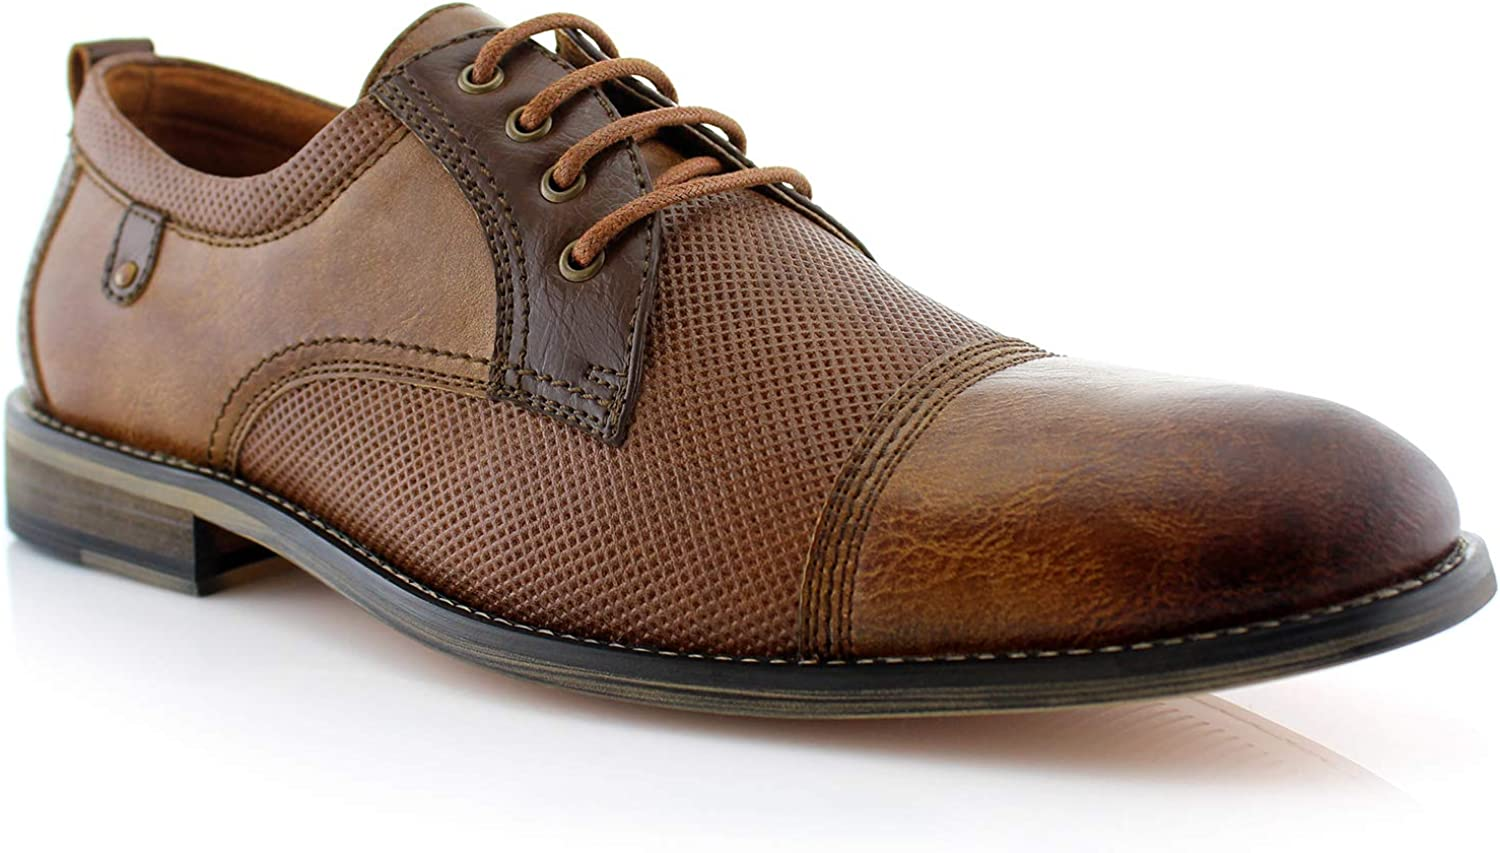 Felix MFA19603L Wing Tip Lace Up Leather Lining Oxford Dress shoes Brown 12